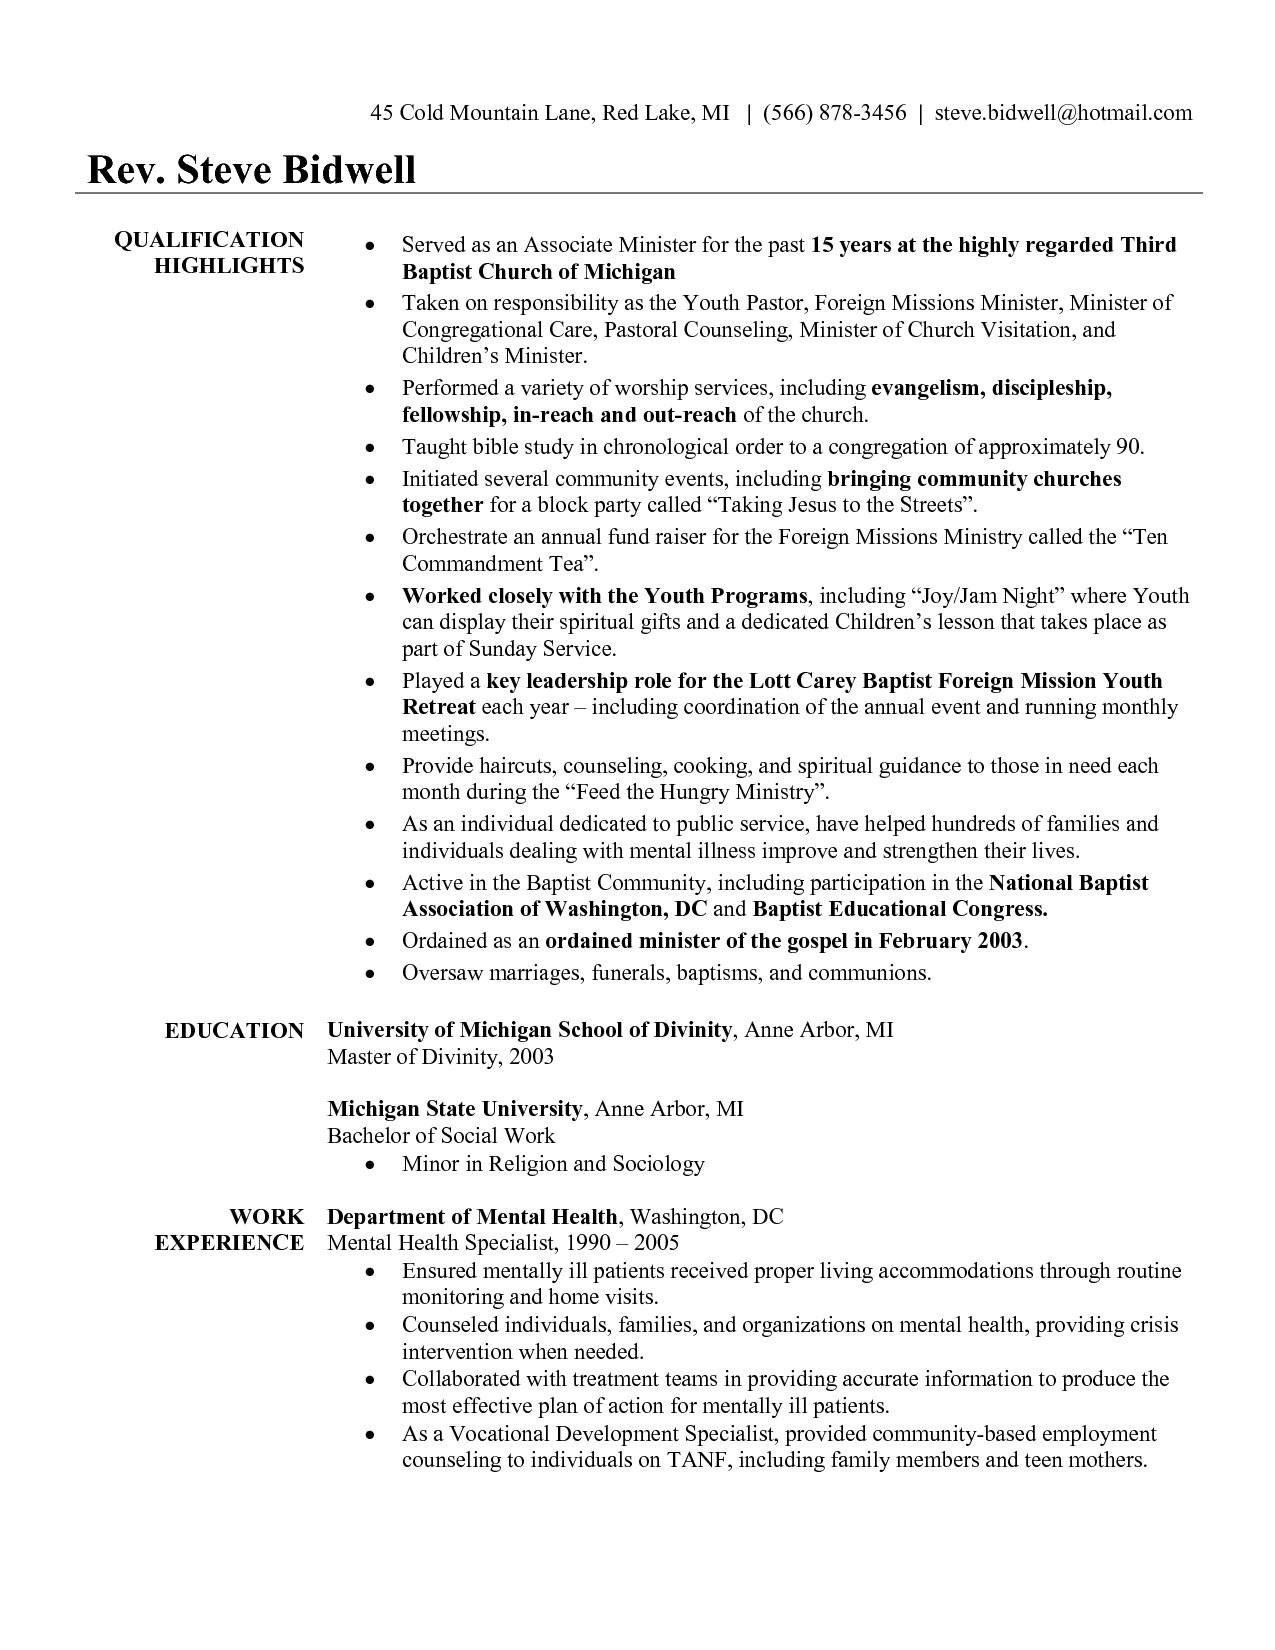 youth ministry resume template Collection-Youth Pastor Resume Awesome Pastor Resume Template Free Unique Qlikview Resume Sample Luxury Od Youth 11-j